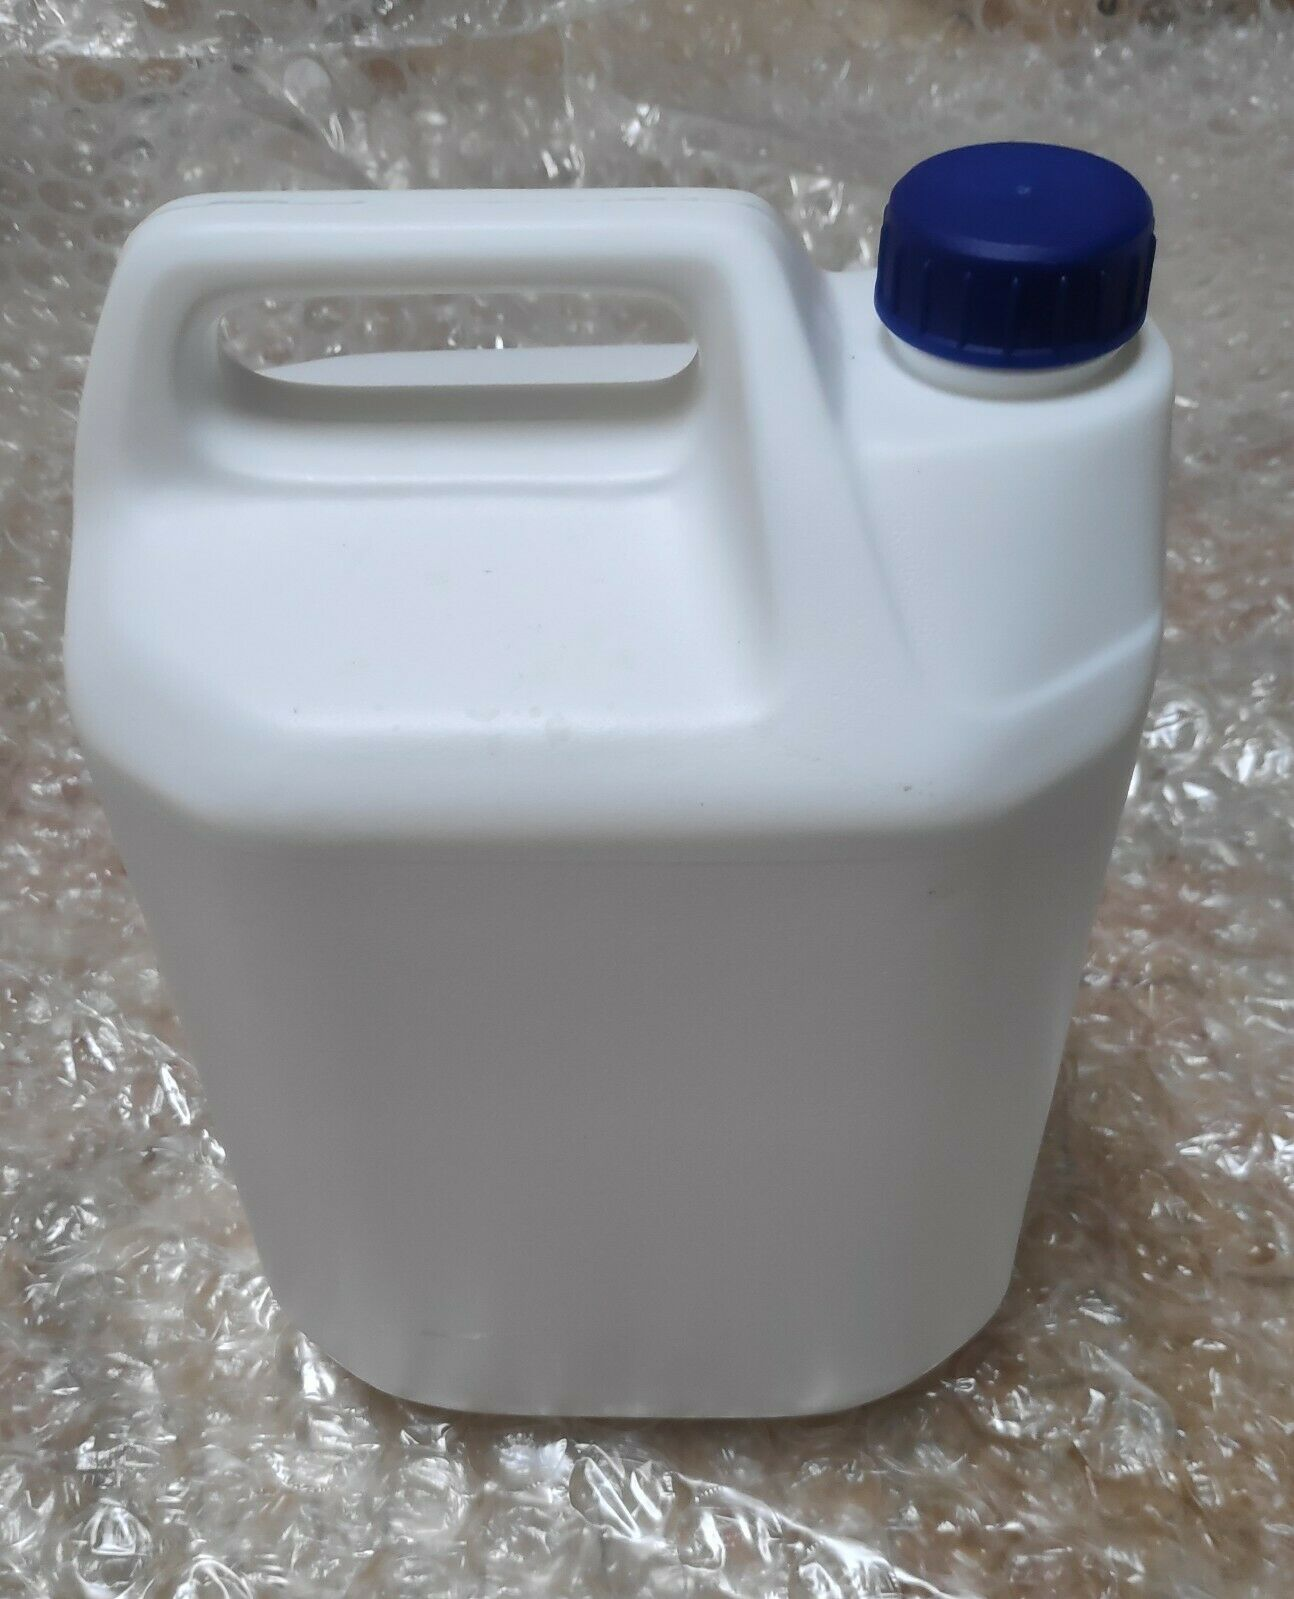 Empty 5 Litre (5000ml) White Plastic HDPE Jerry Cans With Screw Cap - Recyclable